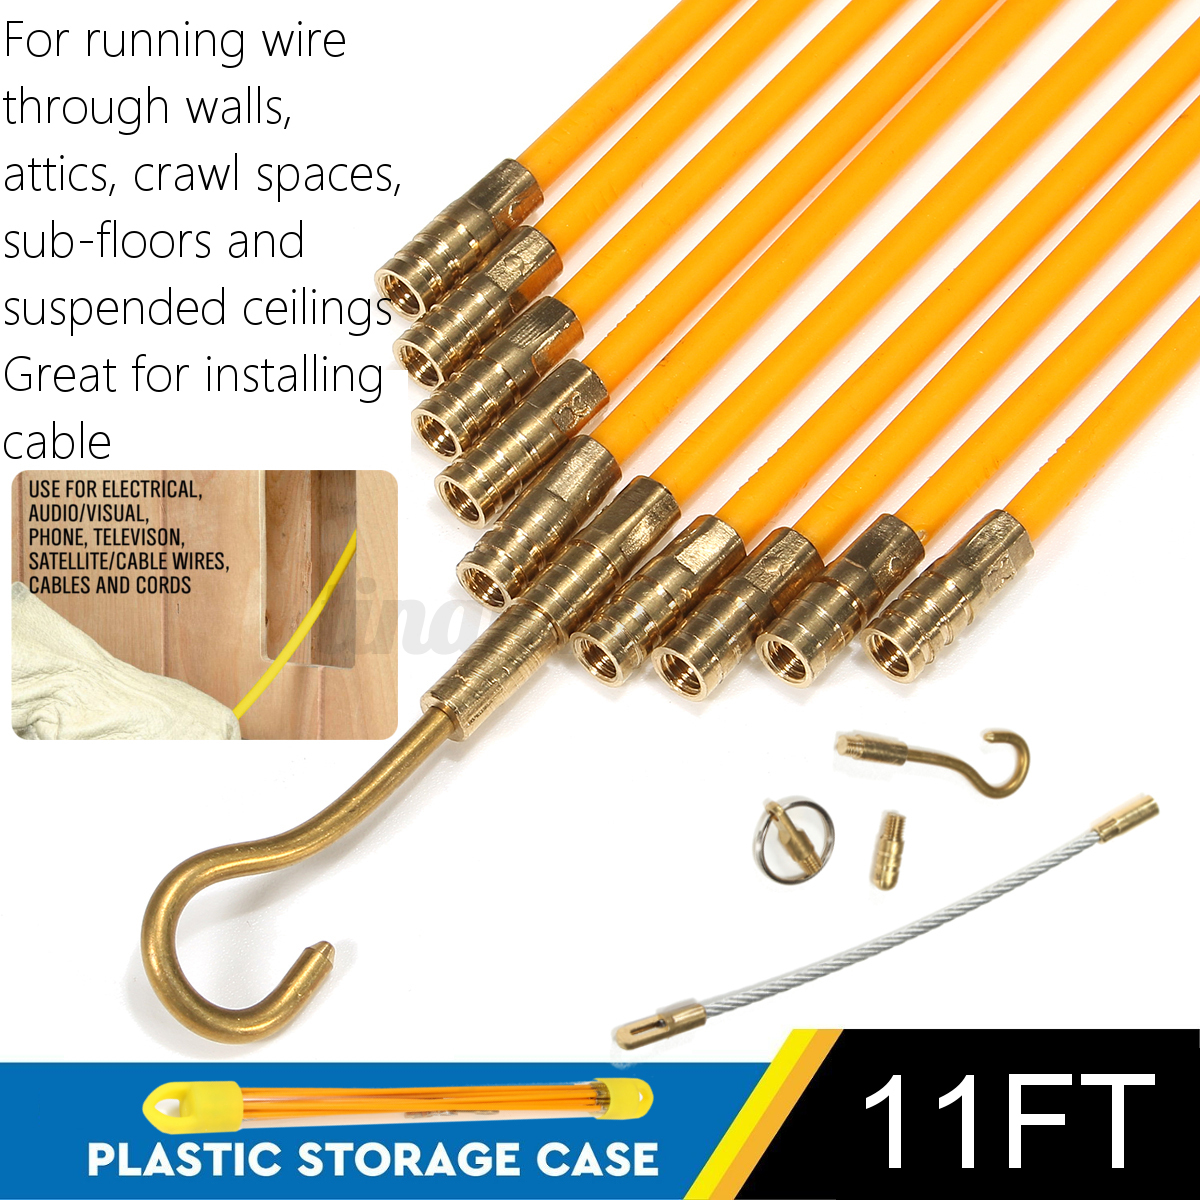 10pcs Fiberglass Cable Running Rods Kit Fish Tape Electrical Wire Wiring Through Walls And Ceilings Detail Image